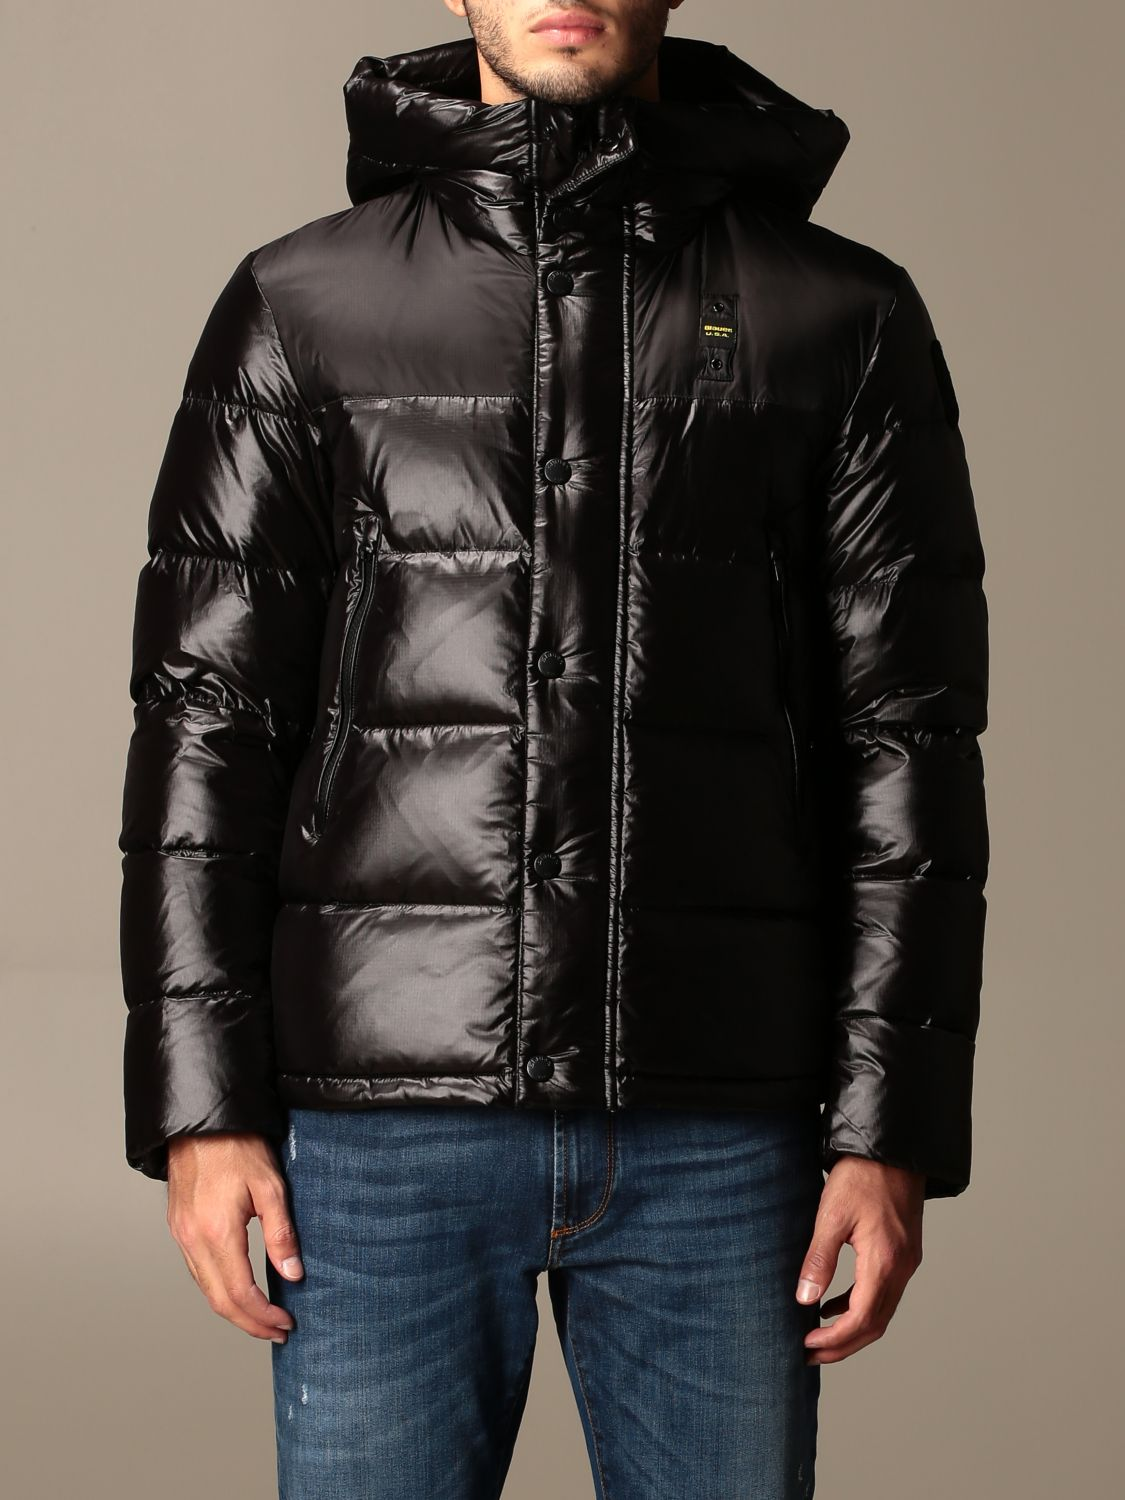 Jacket Blauer: Jacket men Blauer black 1